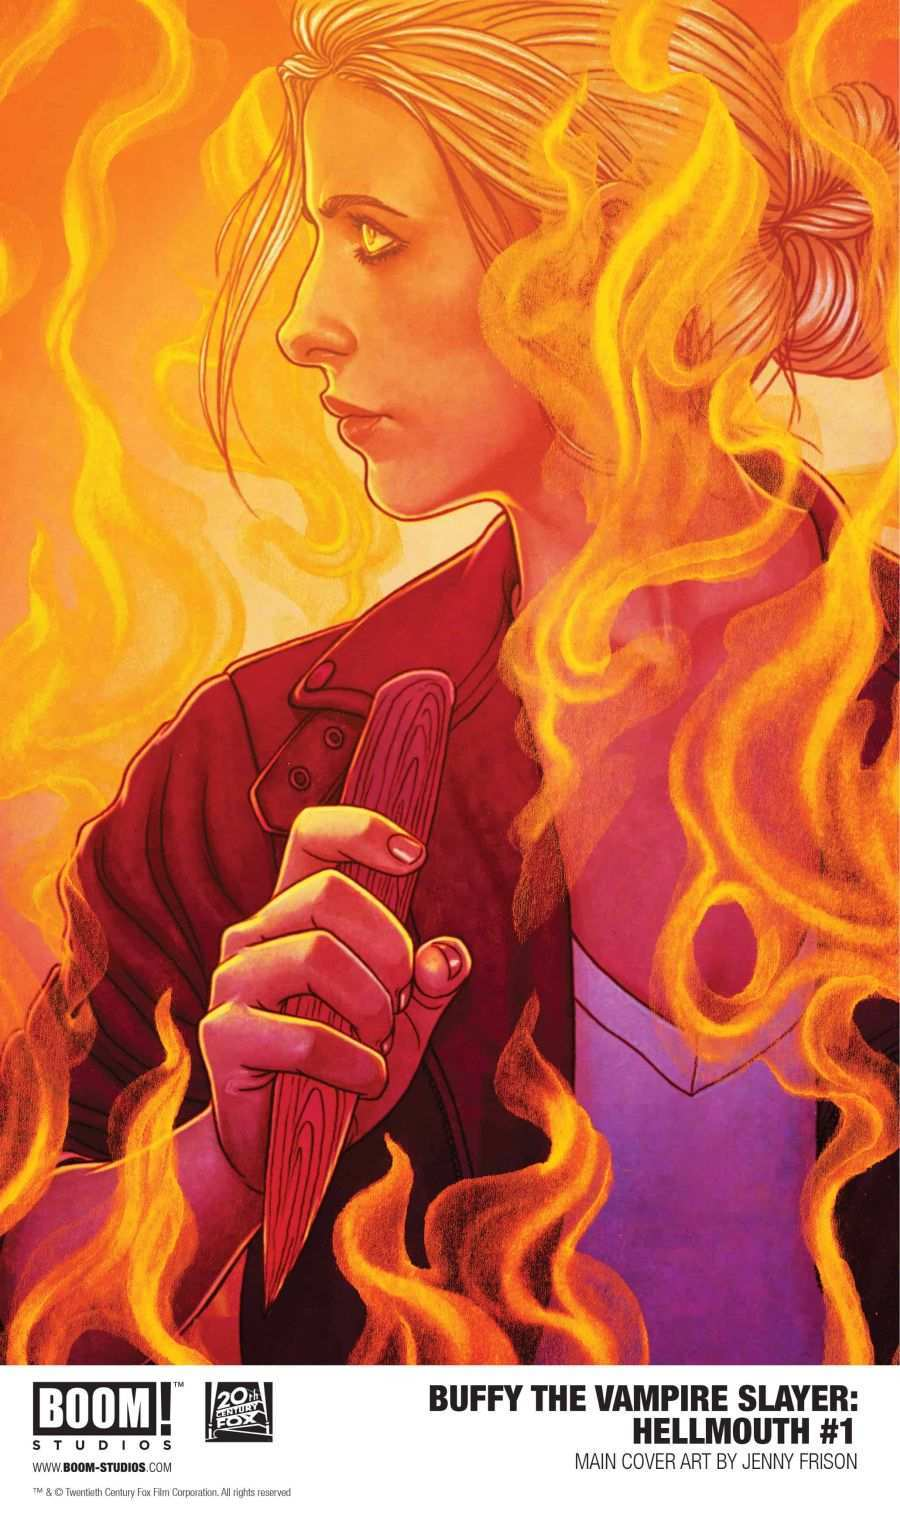 Buffy_Hellmouth_001_Main_Frison_Promo